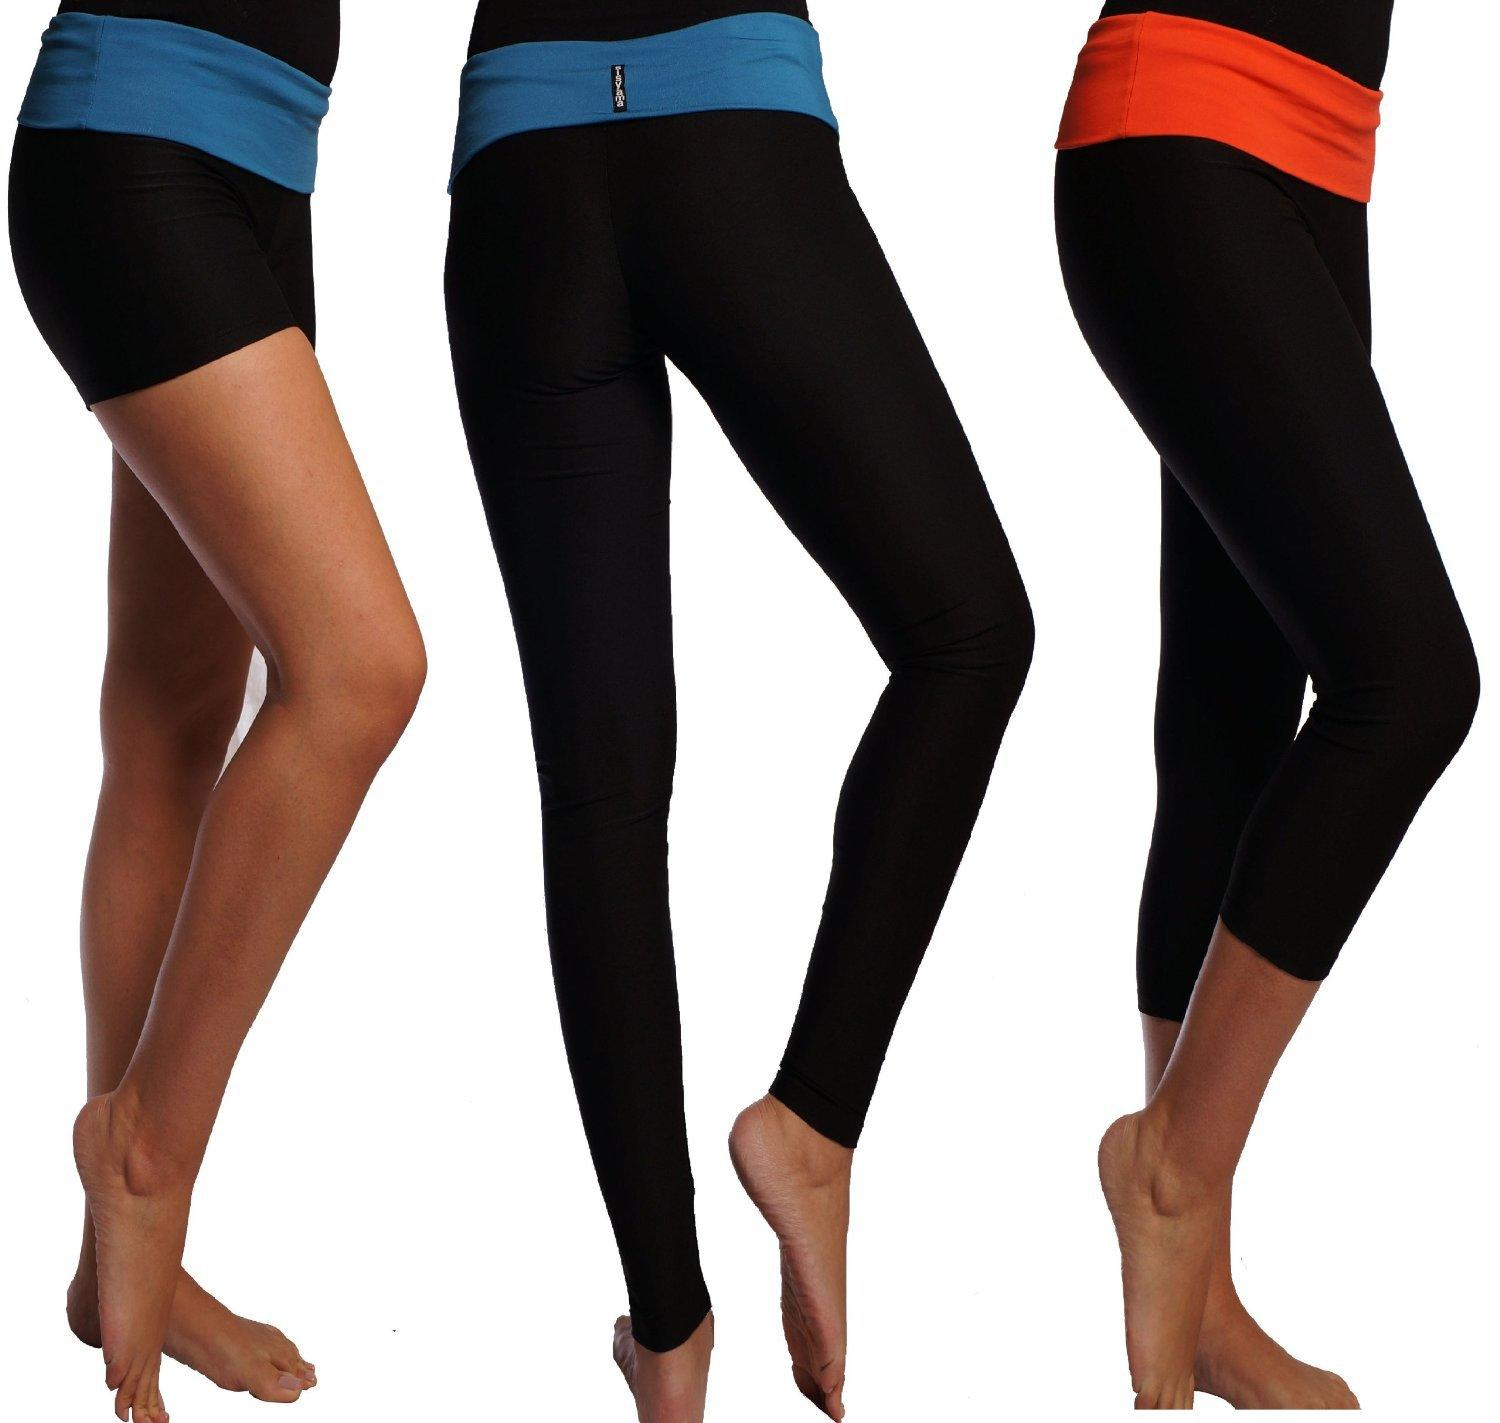 Dry Fit Yoga Workout Foldover Shorts From Amazon